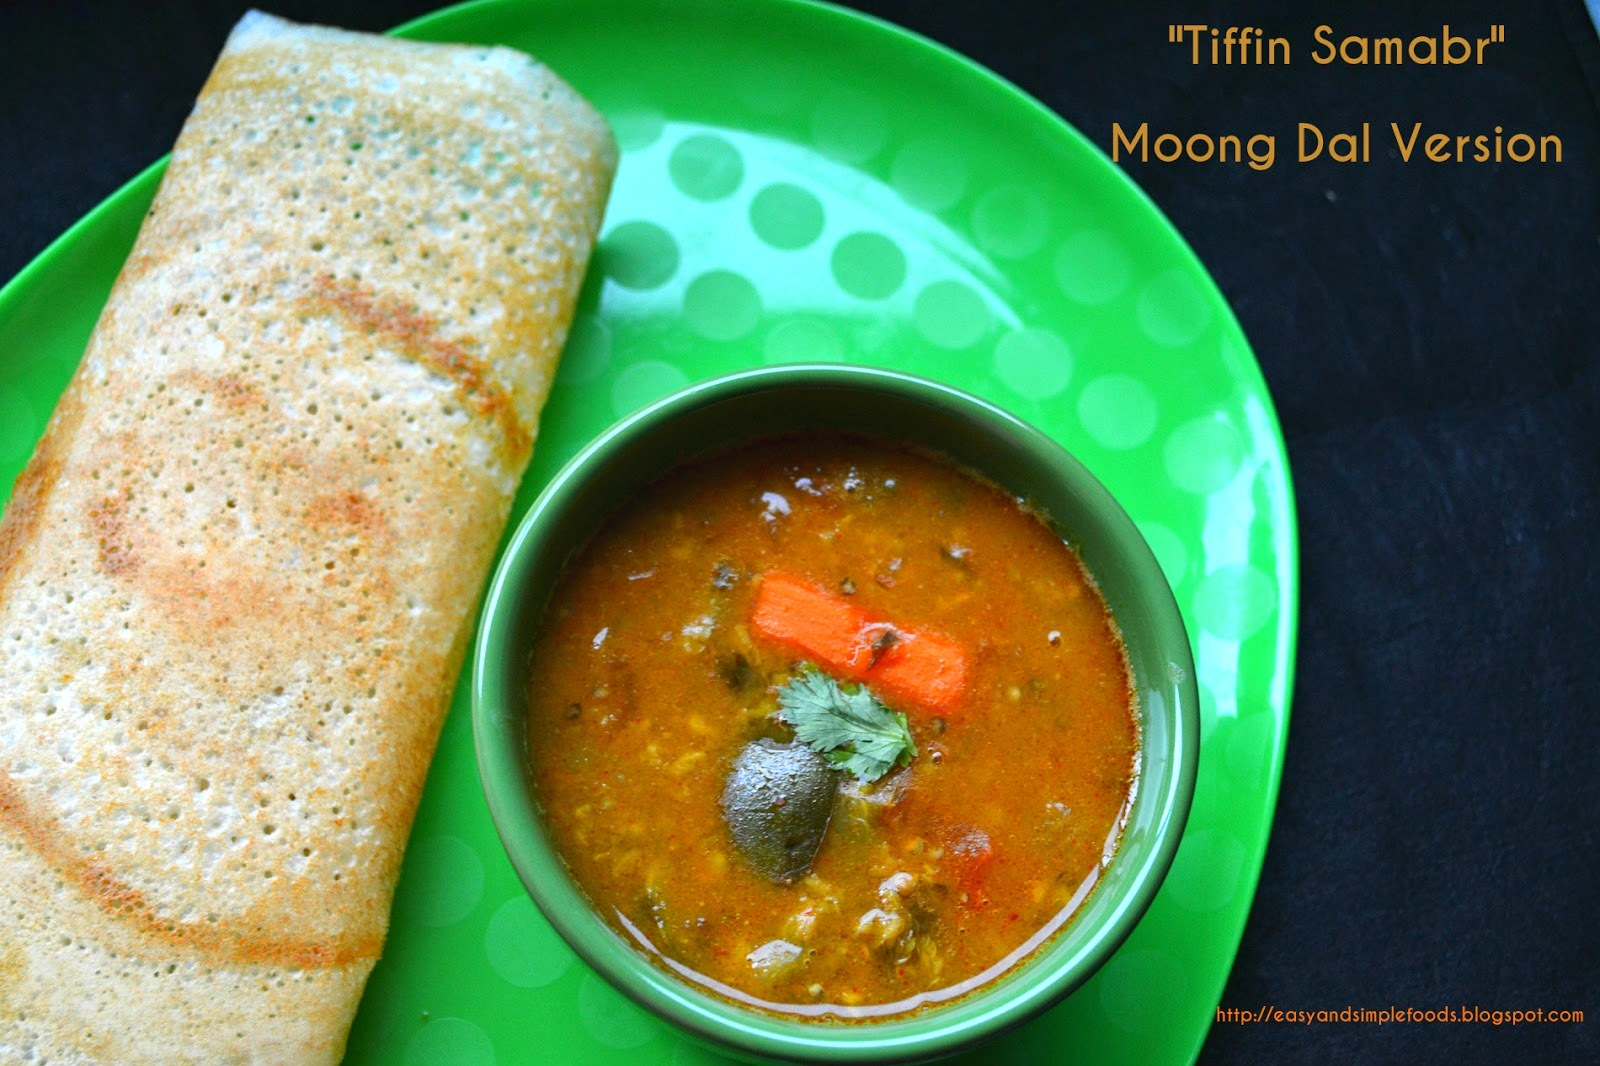 Tiffin Sambar (Using Moong Dal)